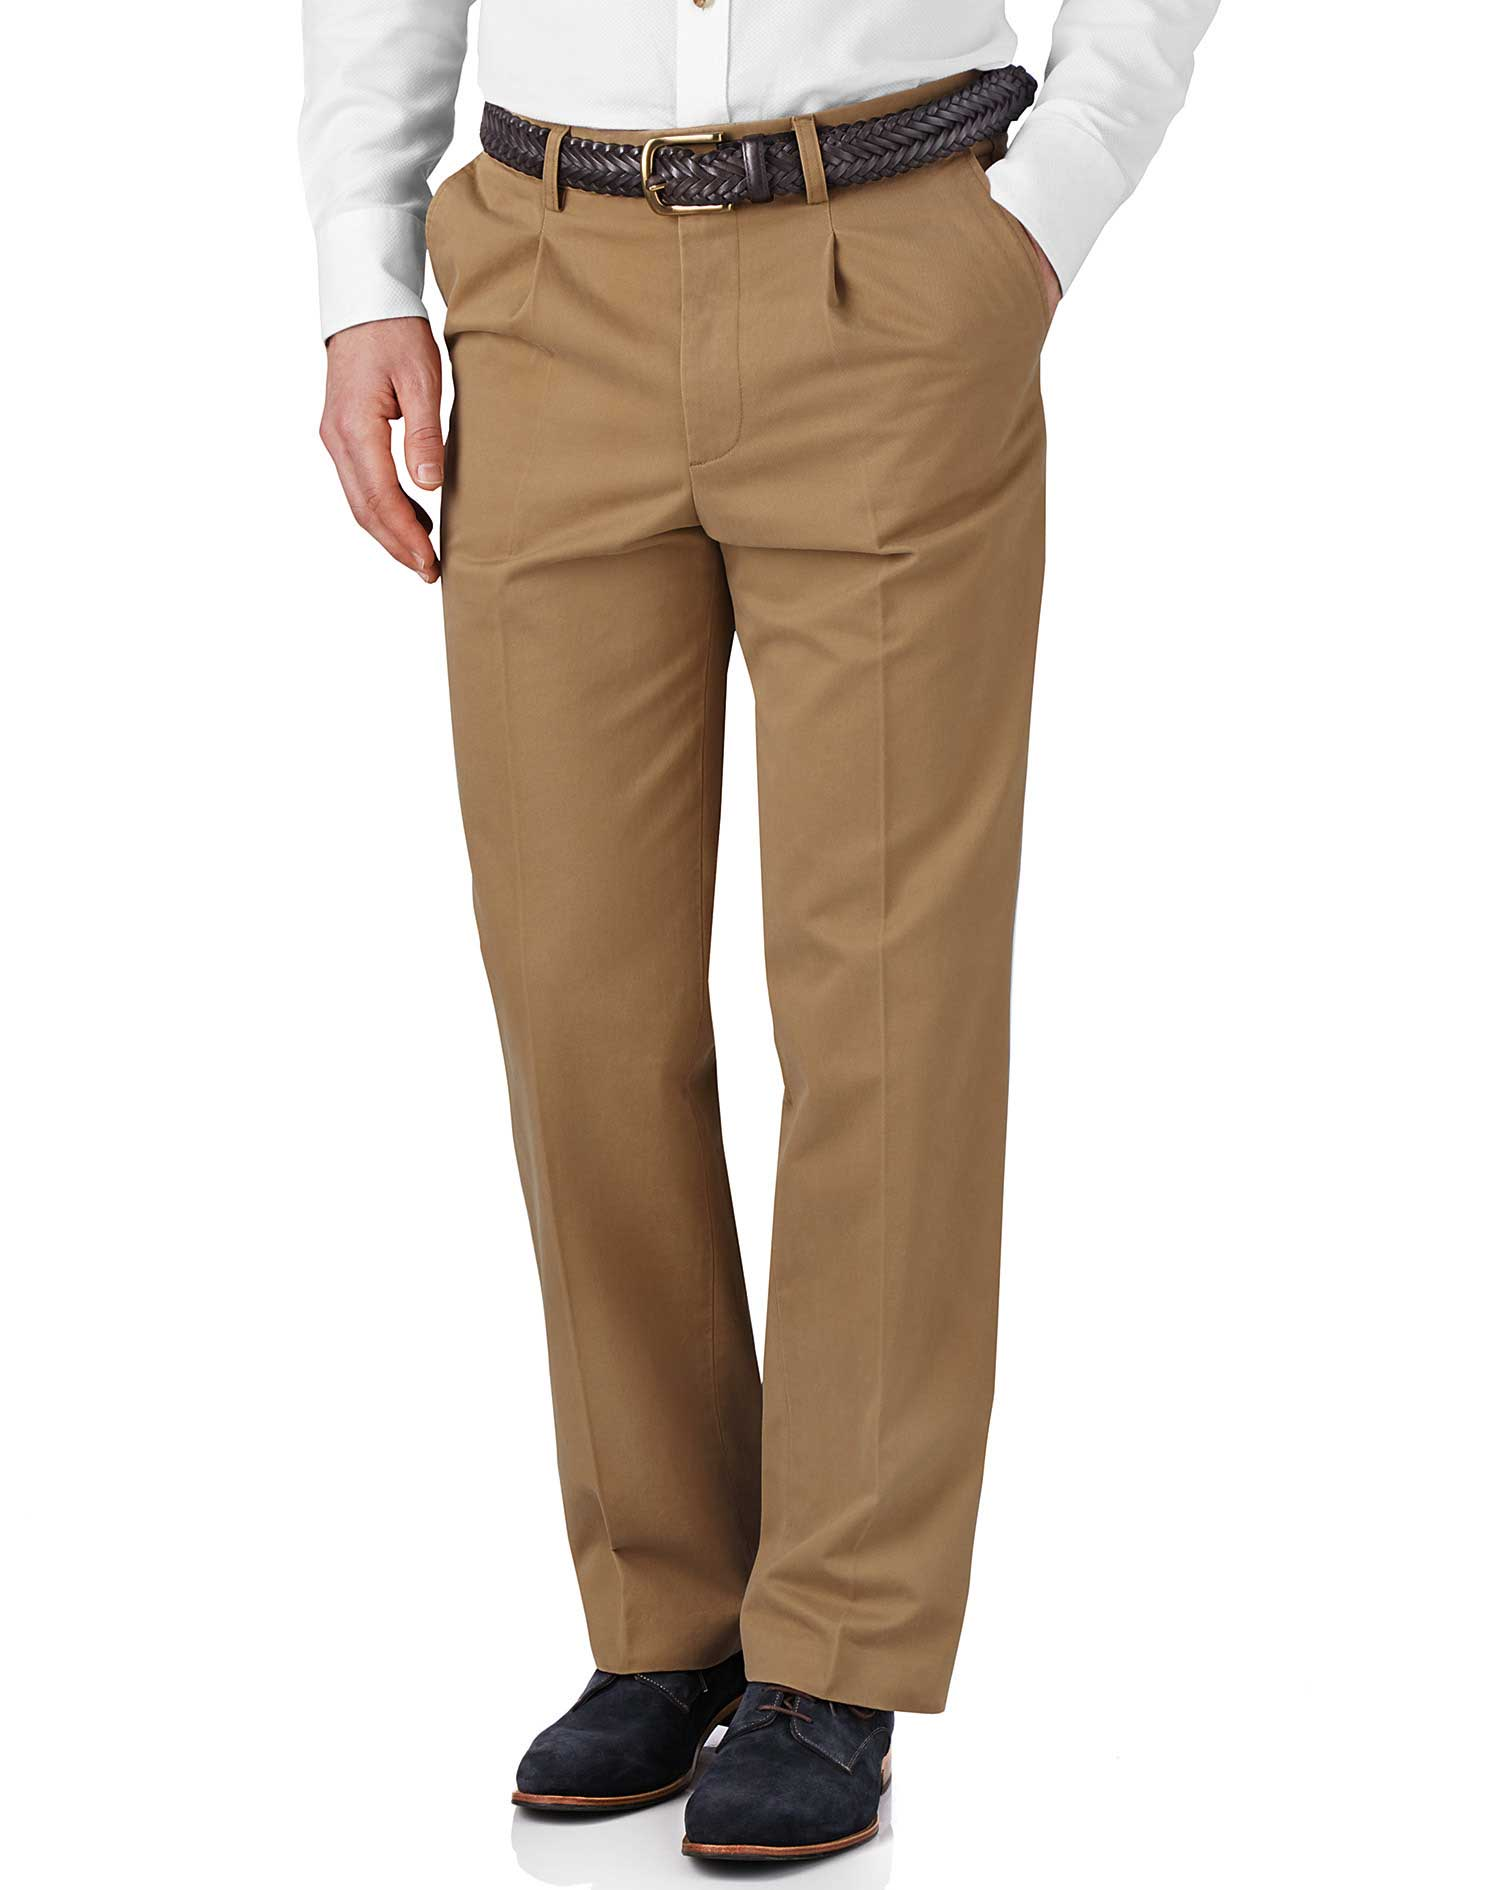 Tan Classic Fit Single Pleat Washed Cotton Chino Trousers Size W36 L34 by Charles Tyrwhitt